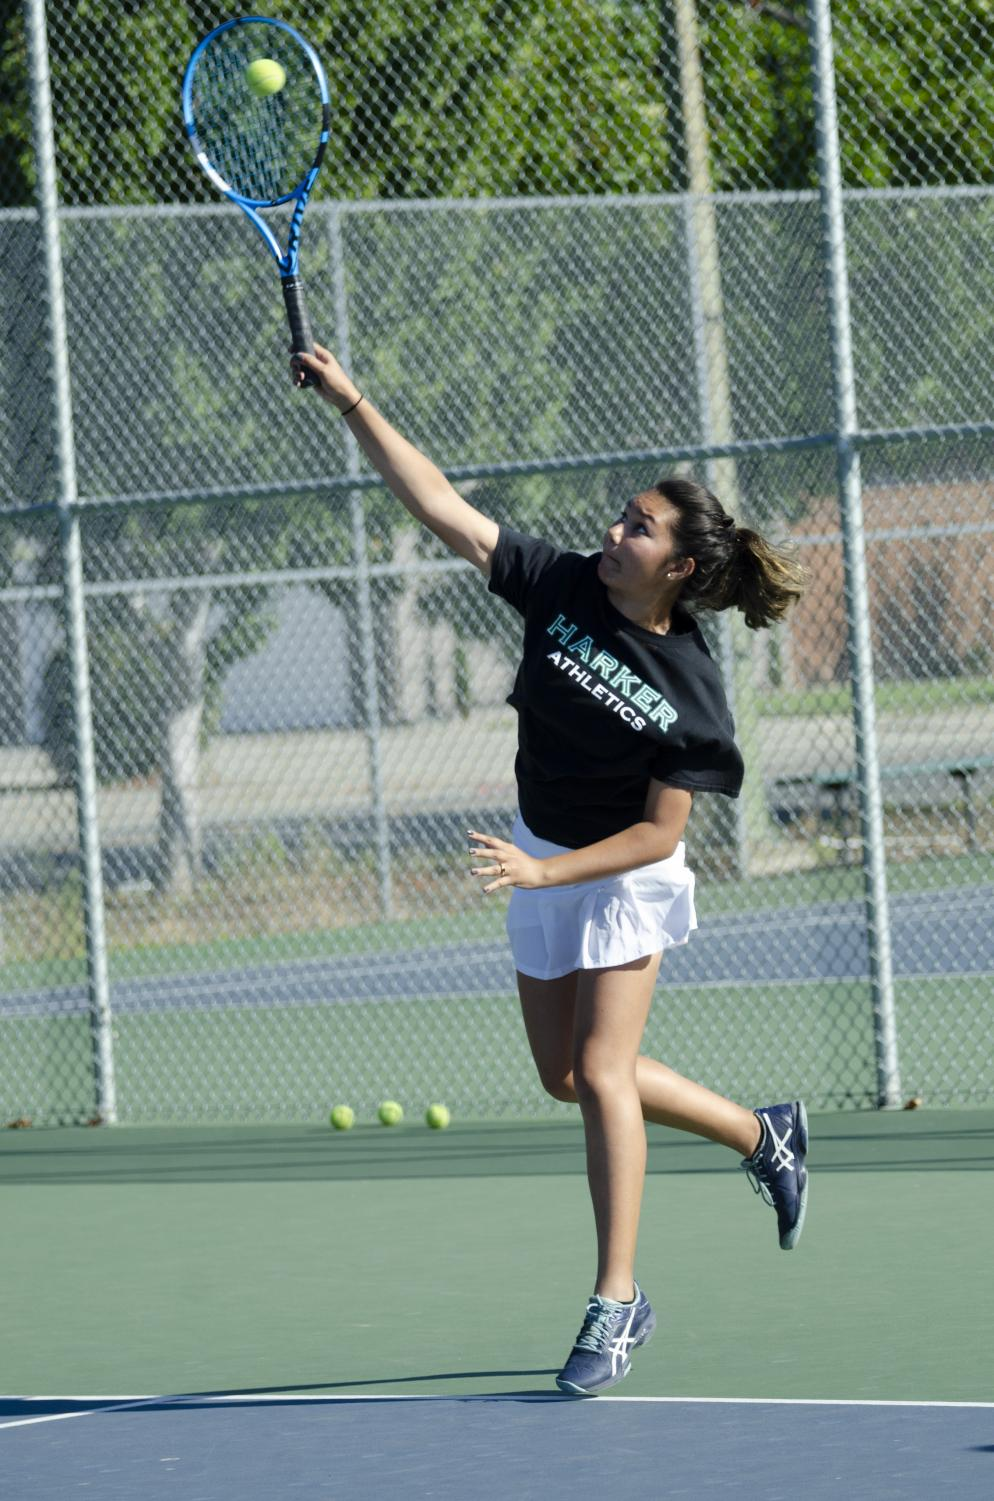 Madeleine+Hansen+%2810%29+practices+serving+during+a+girls+tennis+practice+at+Blackford.+The+Eagles+defeated+Salinas+5-2+in+the+finals+of+the+Santa+Catalina+Tennis+Invitational+this+weekend+to+take+home+the+championship.+